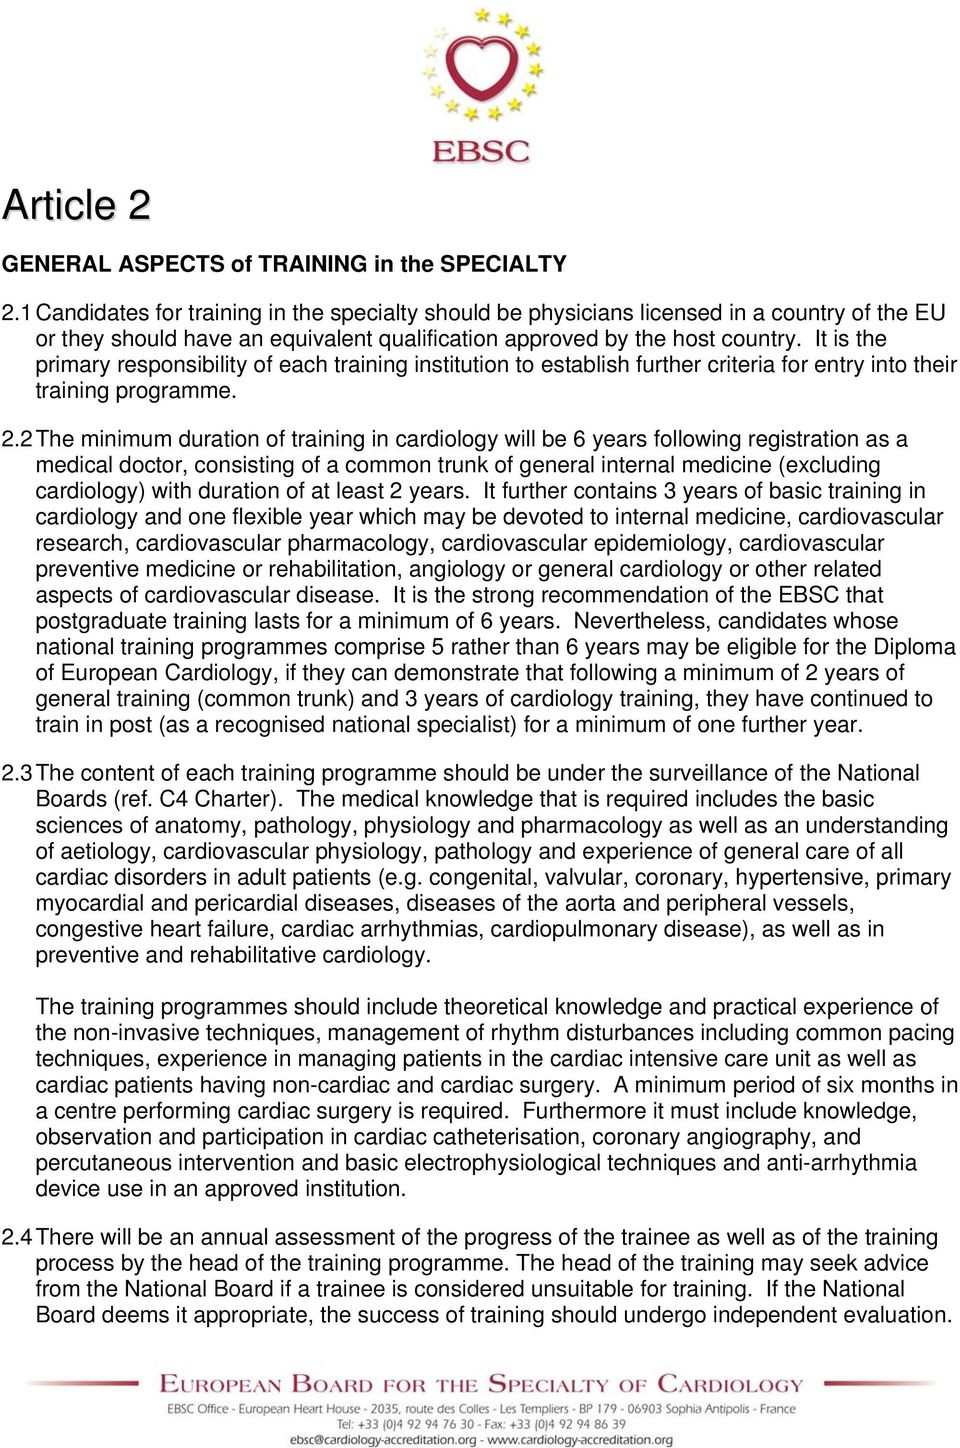 CENTRAL MONITORING AUTHORITY for CARDIOLOGY at EU LEVEL - PDF